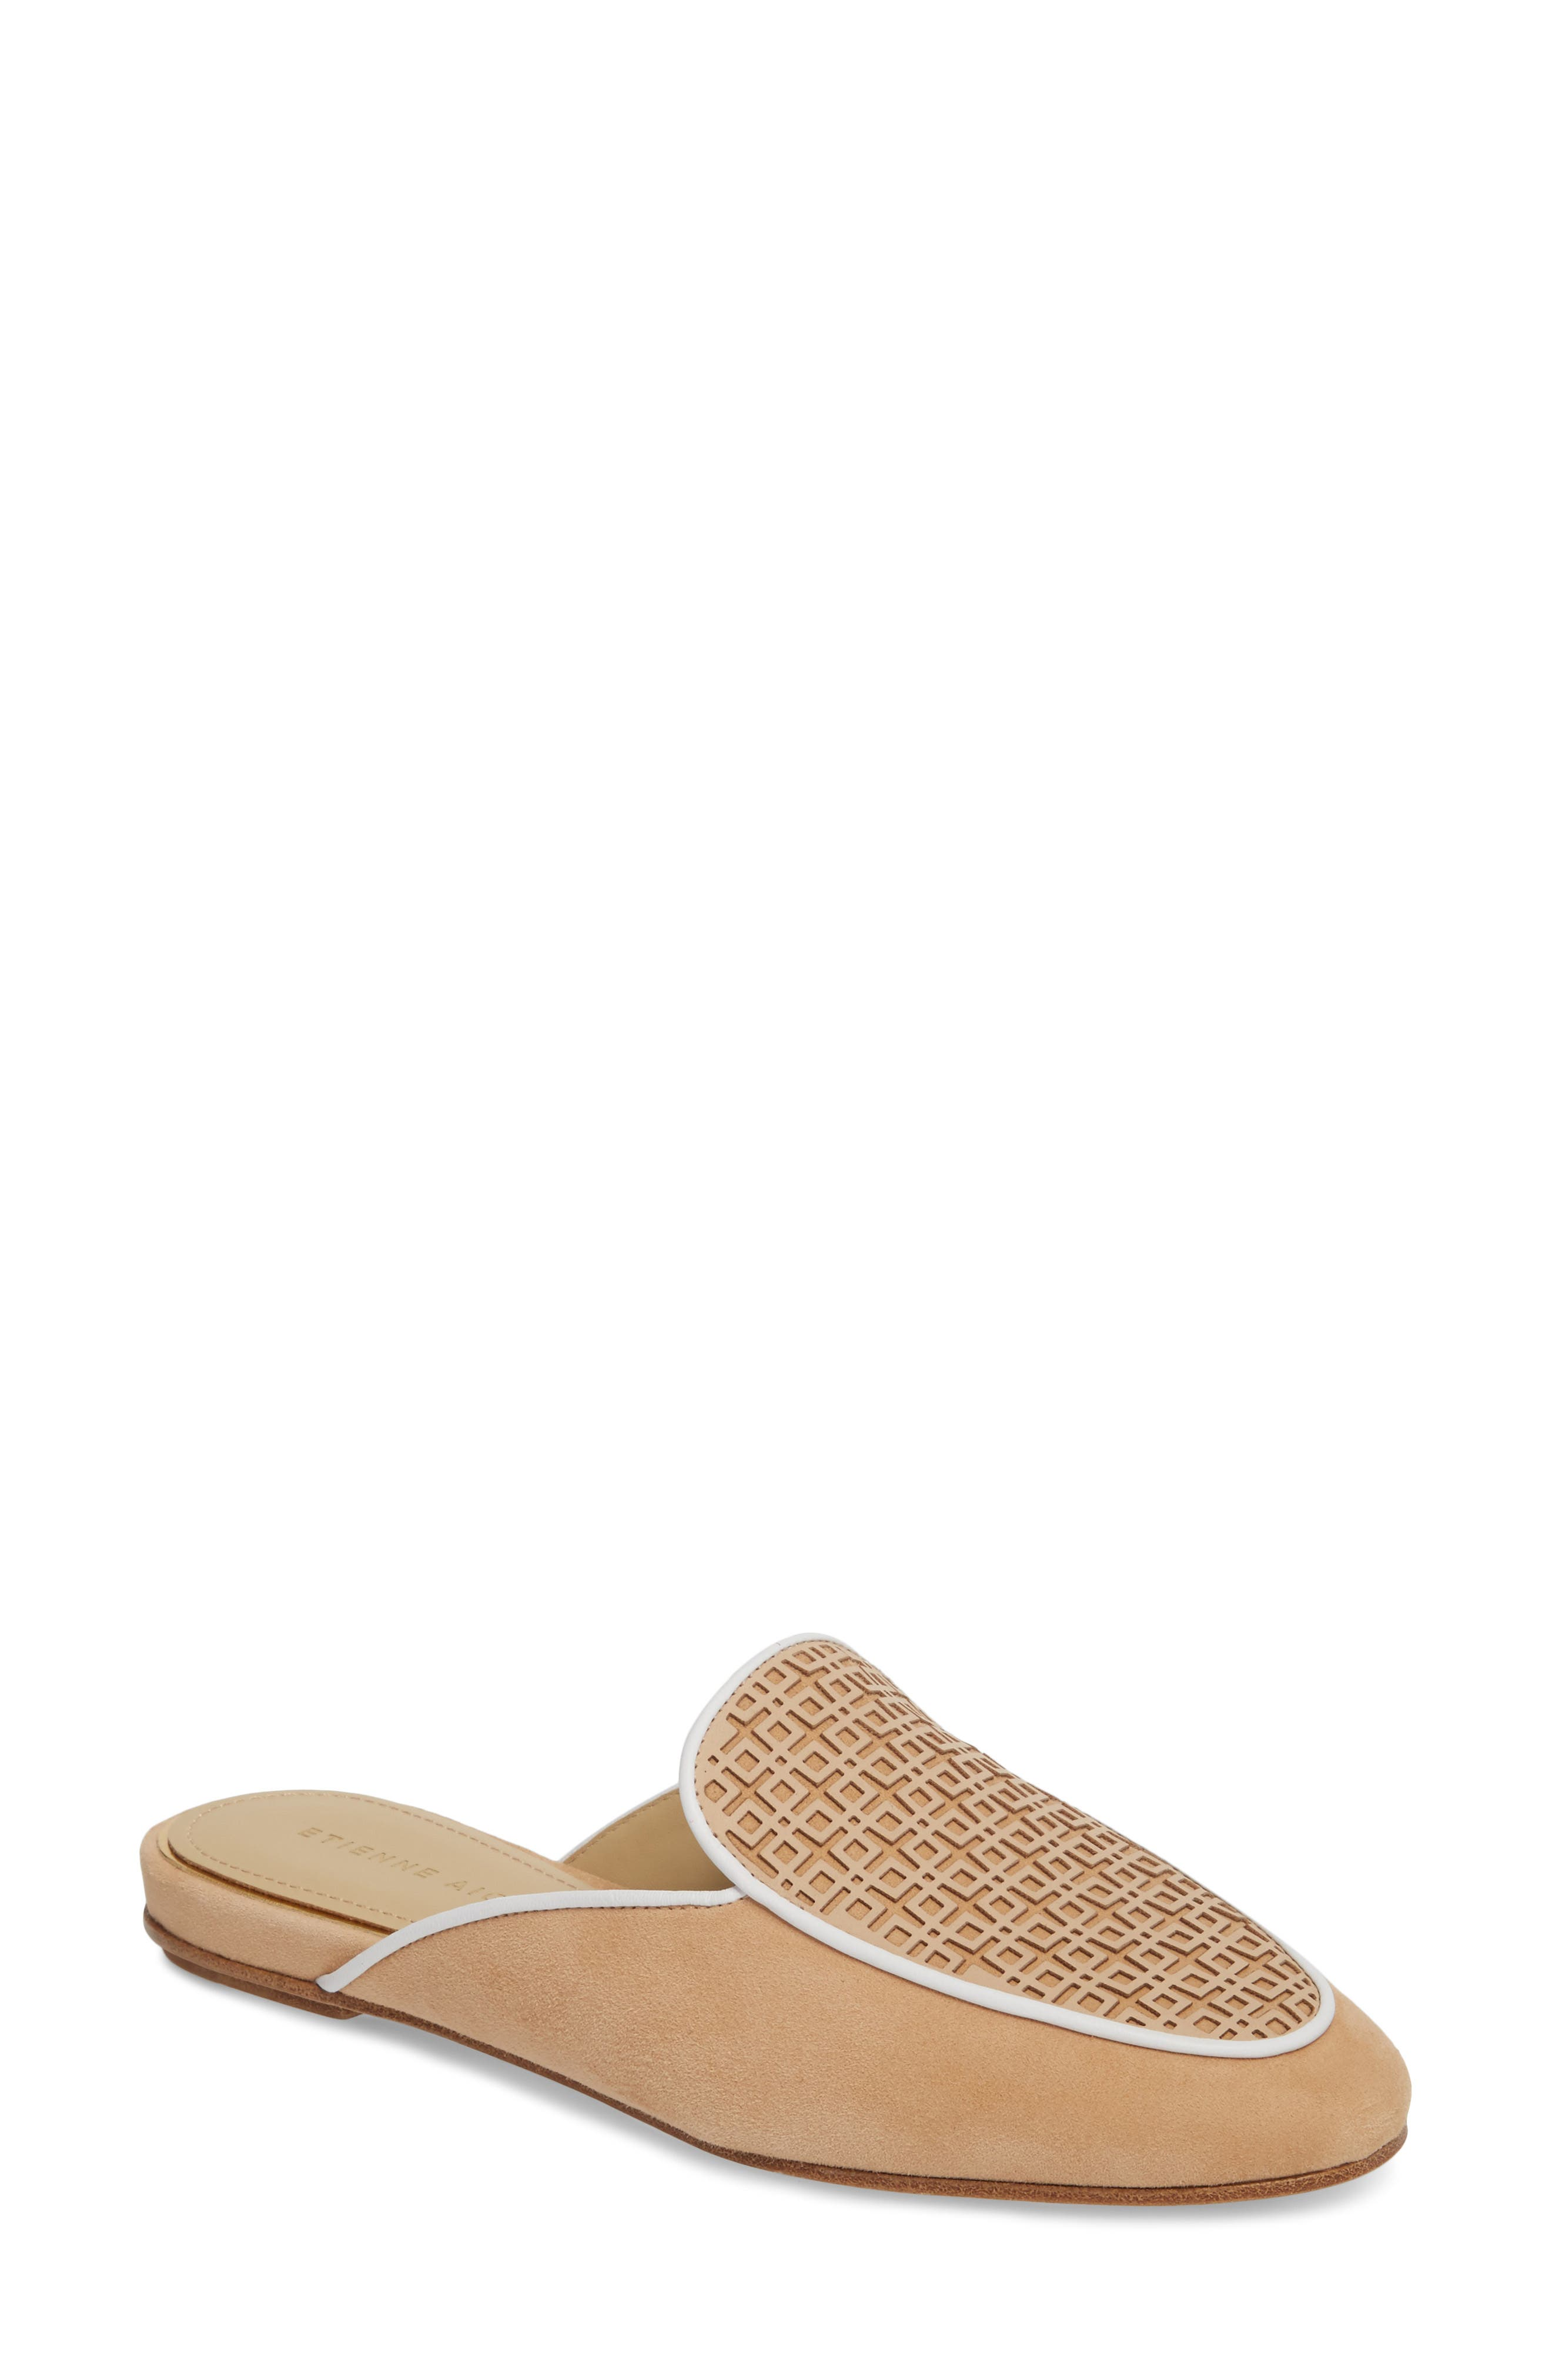 Caymen Mule,                             Main thumbnail 1, color,                             NATURAL/ FAWN/ WHITE